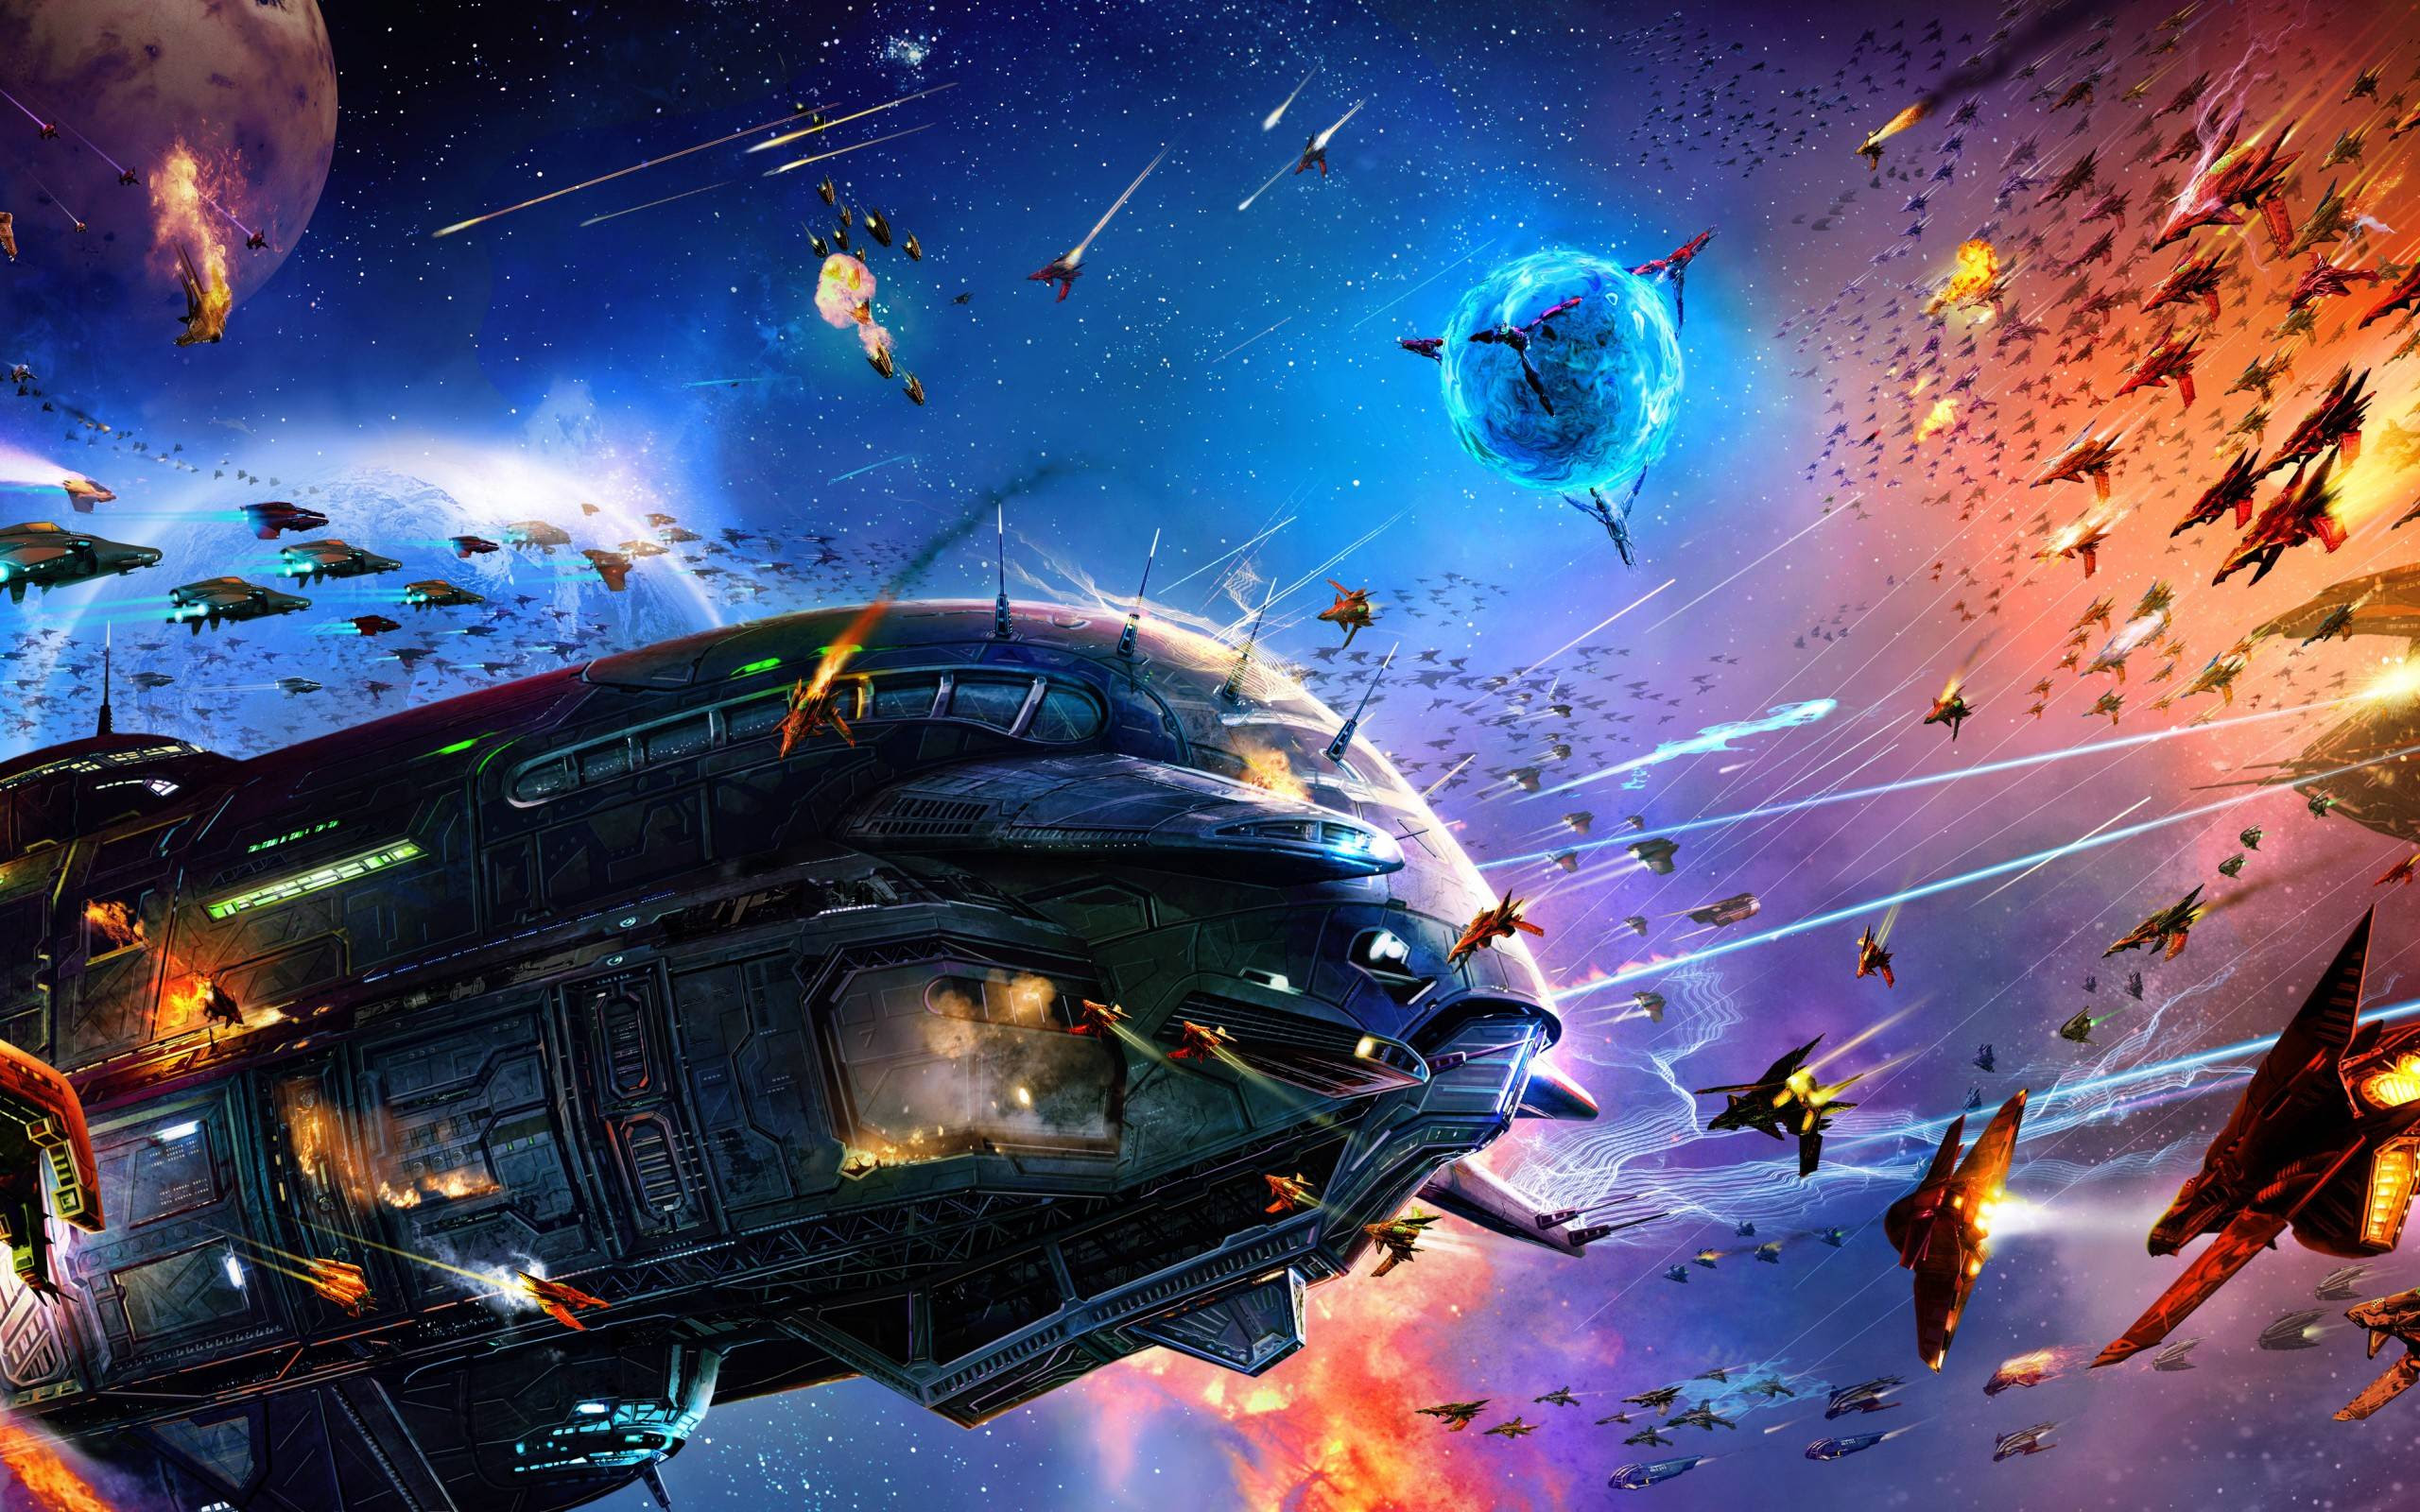 Wallpaper Kerang Download Hd Space Battle Wallpaper